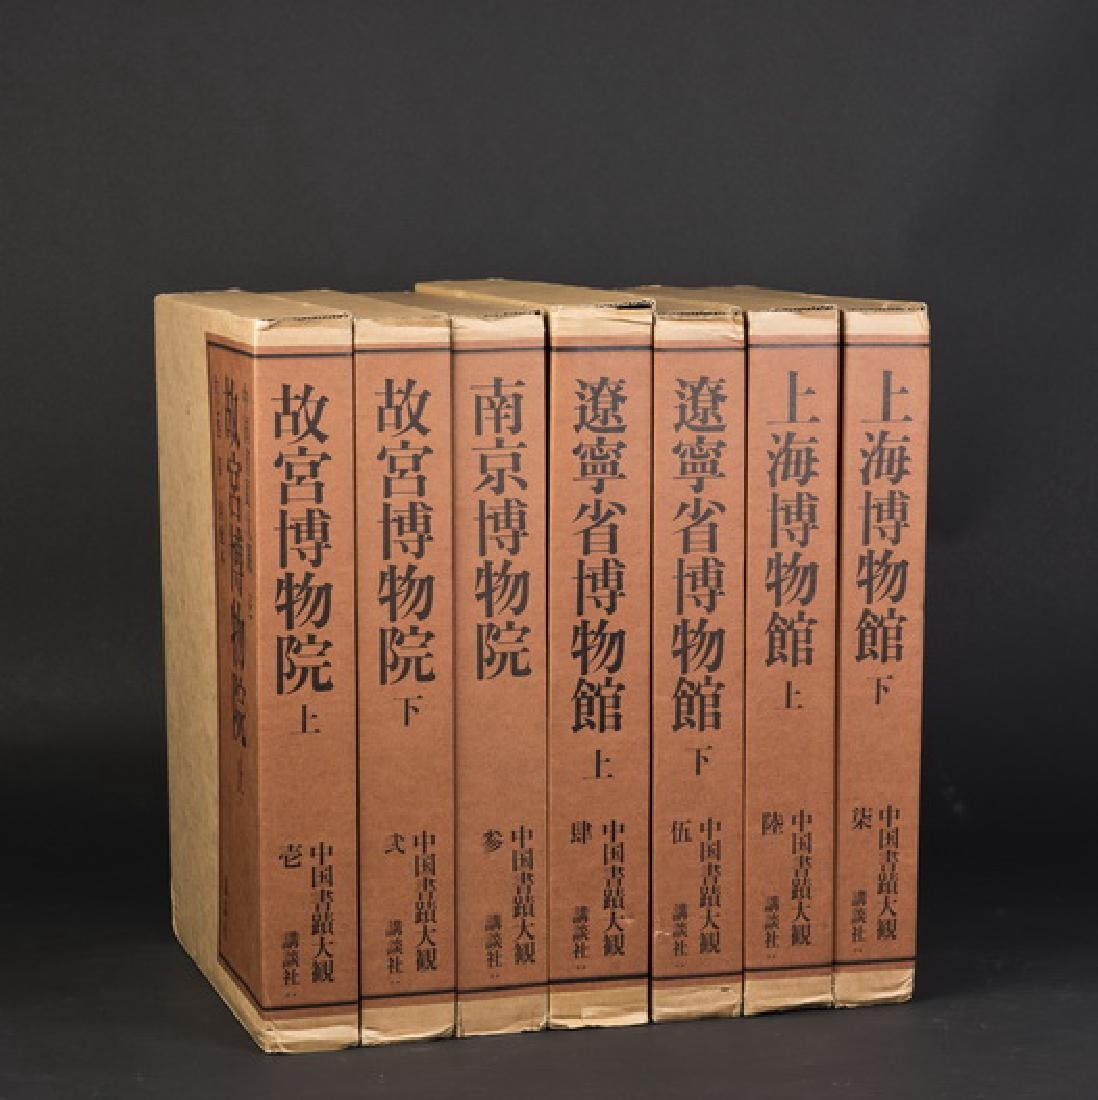 Chinese Calligraphy Collections (7 volumes)